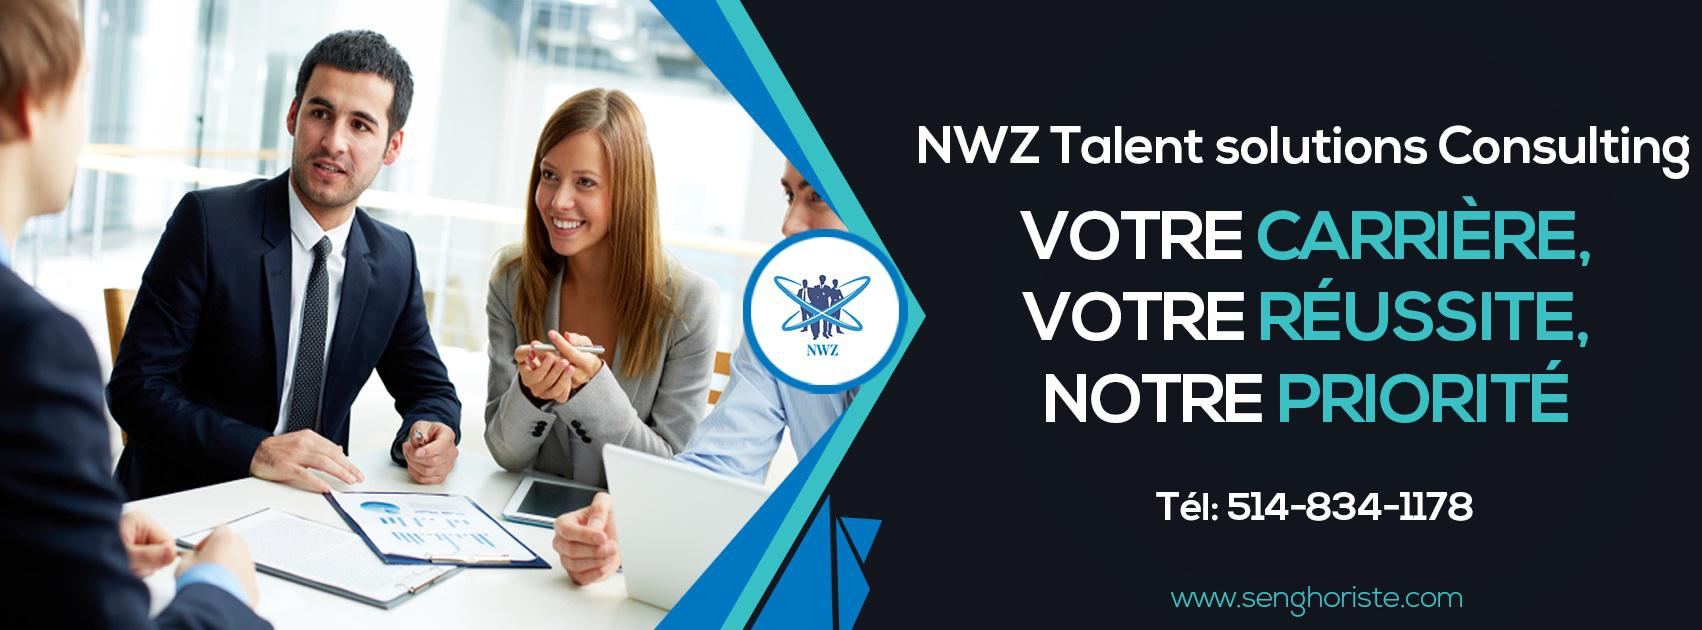 NWZ Talent Solutions Consulting Logo